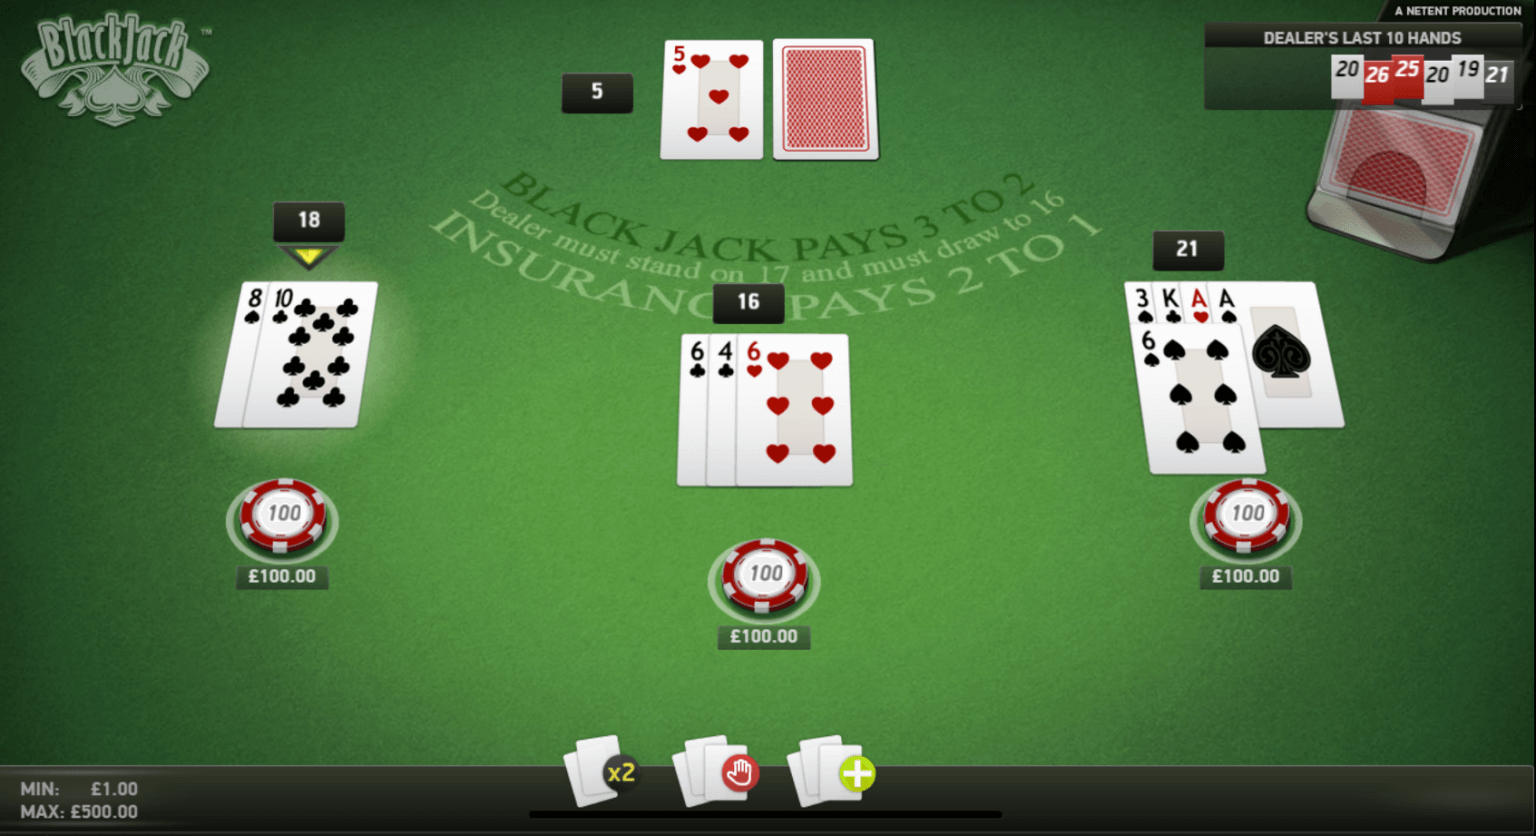 A screenshot of the NetEnt Blackjack game where the user is playing three hands at once